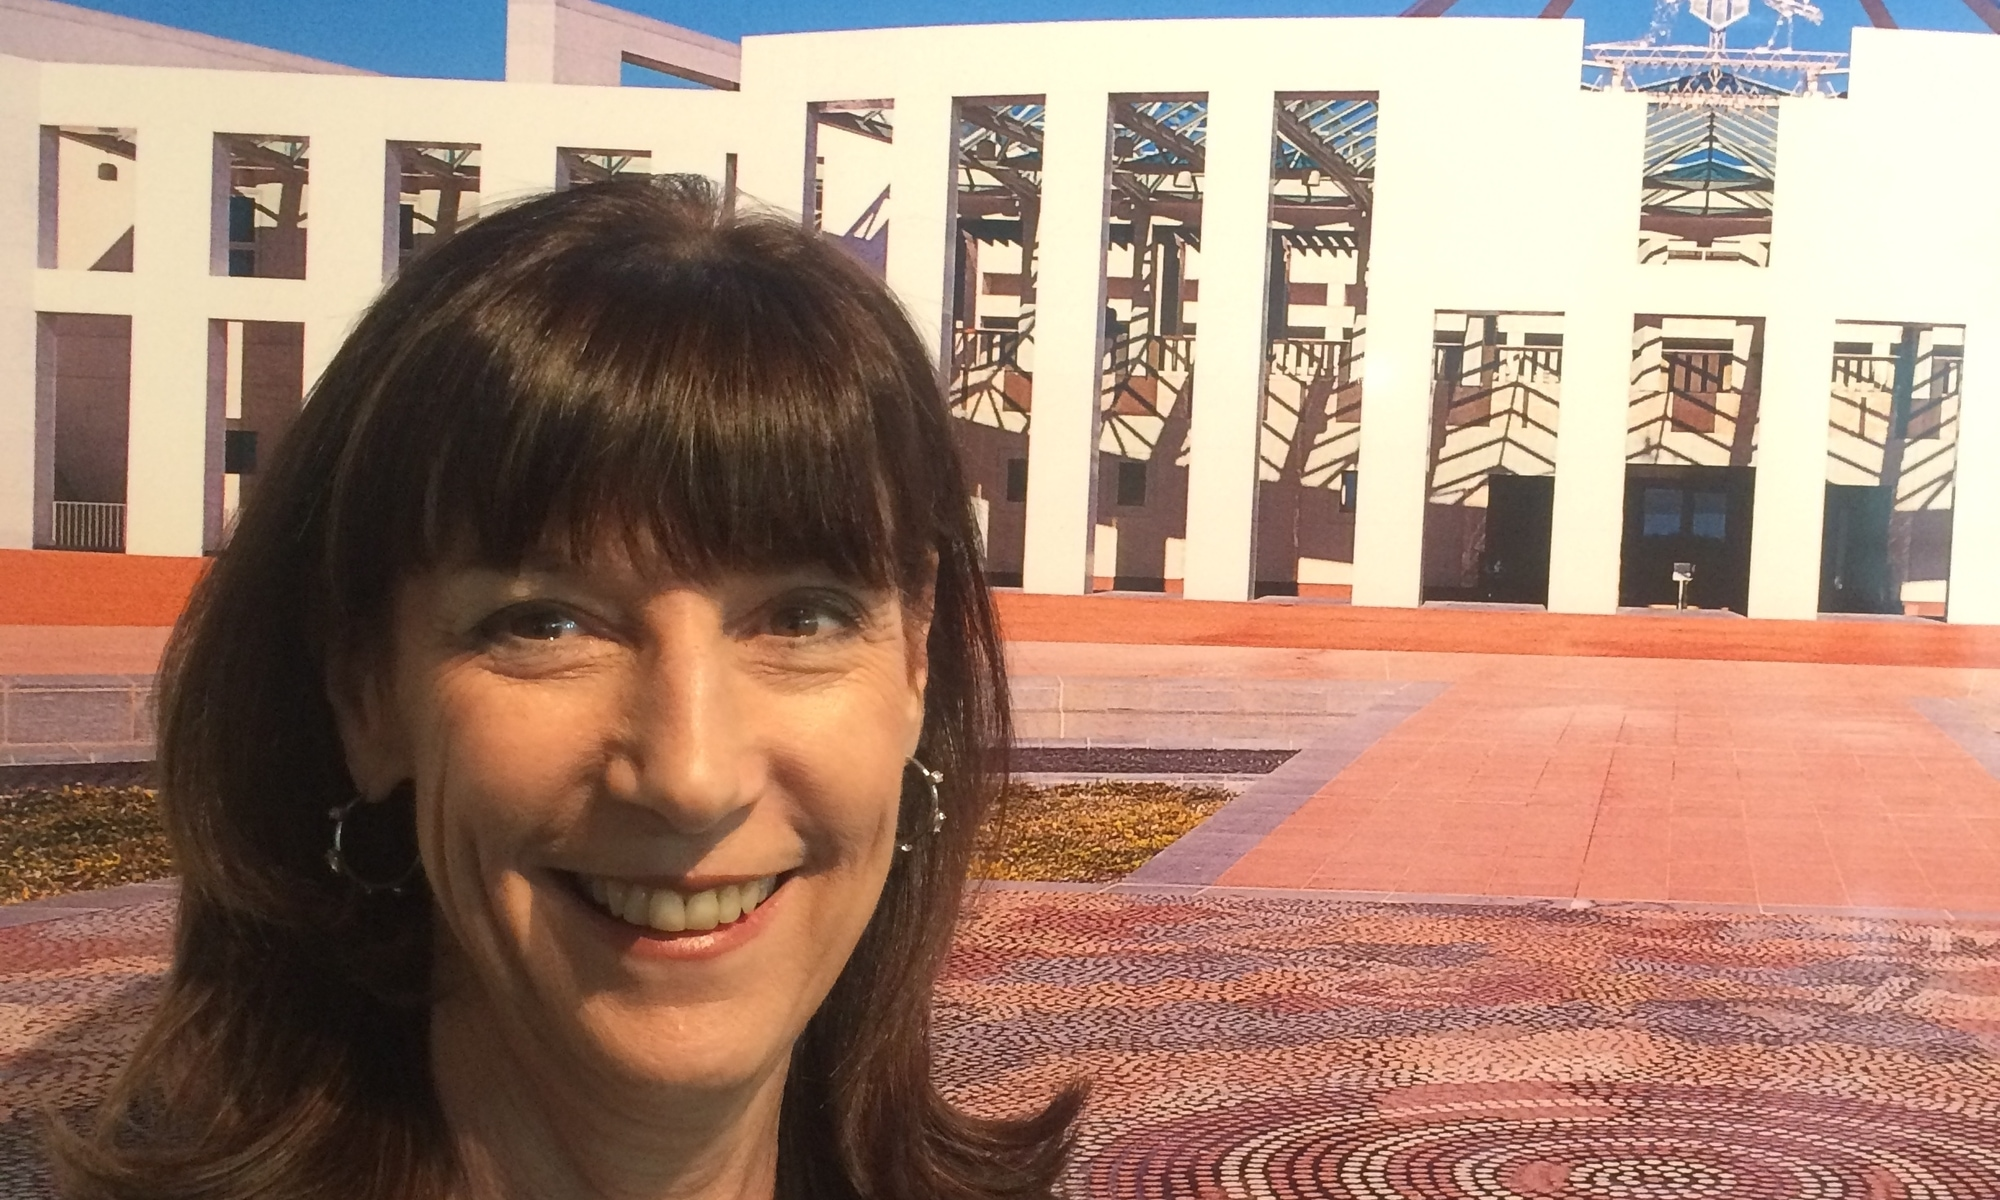 karenne on forecourt of parliament house